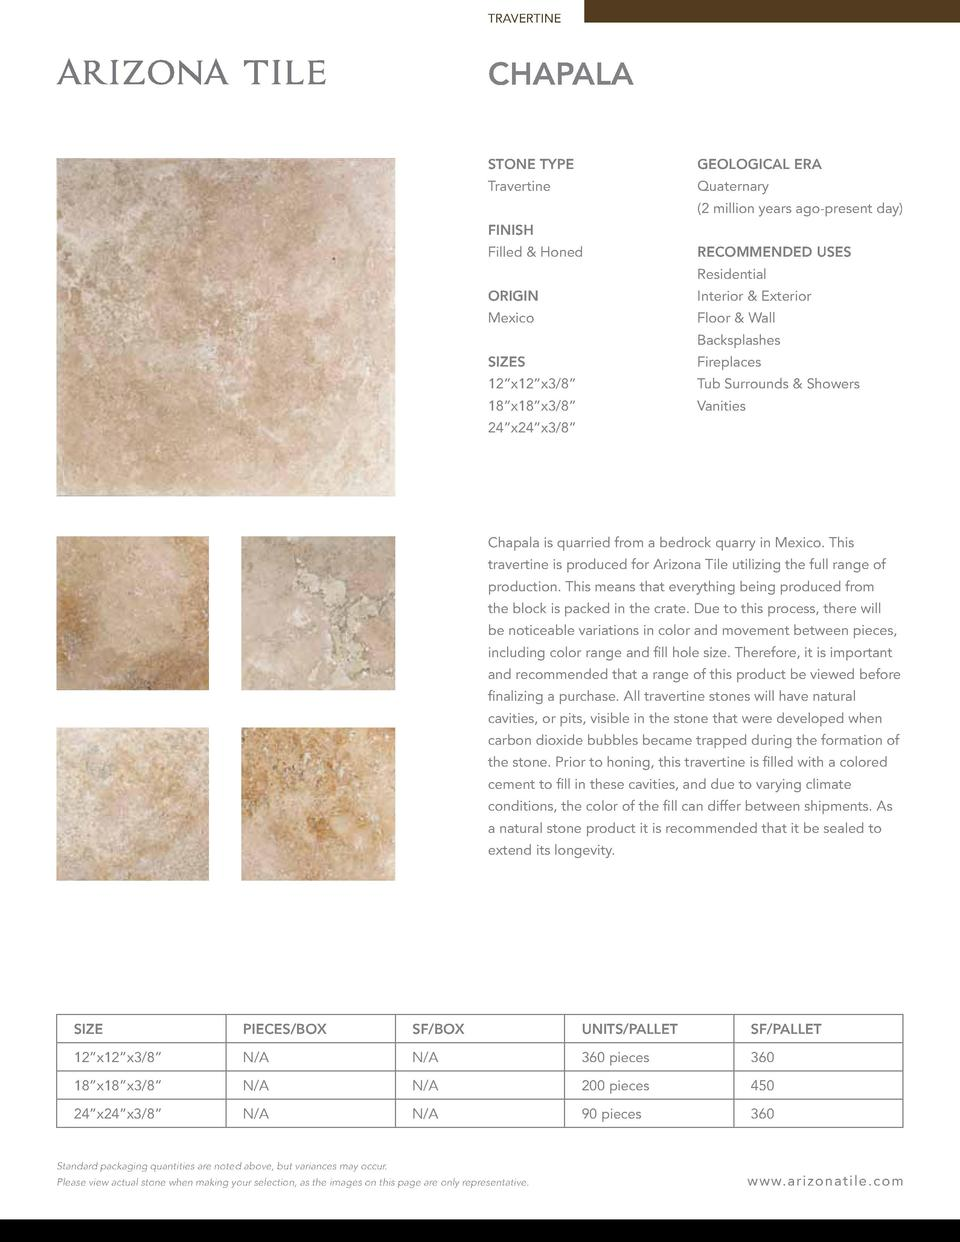 TRAVERTINE  CHAPALA STONE TYPE  GEOLOGICAL ERA  Travertine  Quaternary  2 million years ago-present day   FINISH Filled   ...